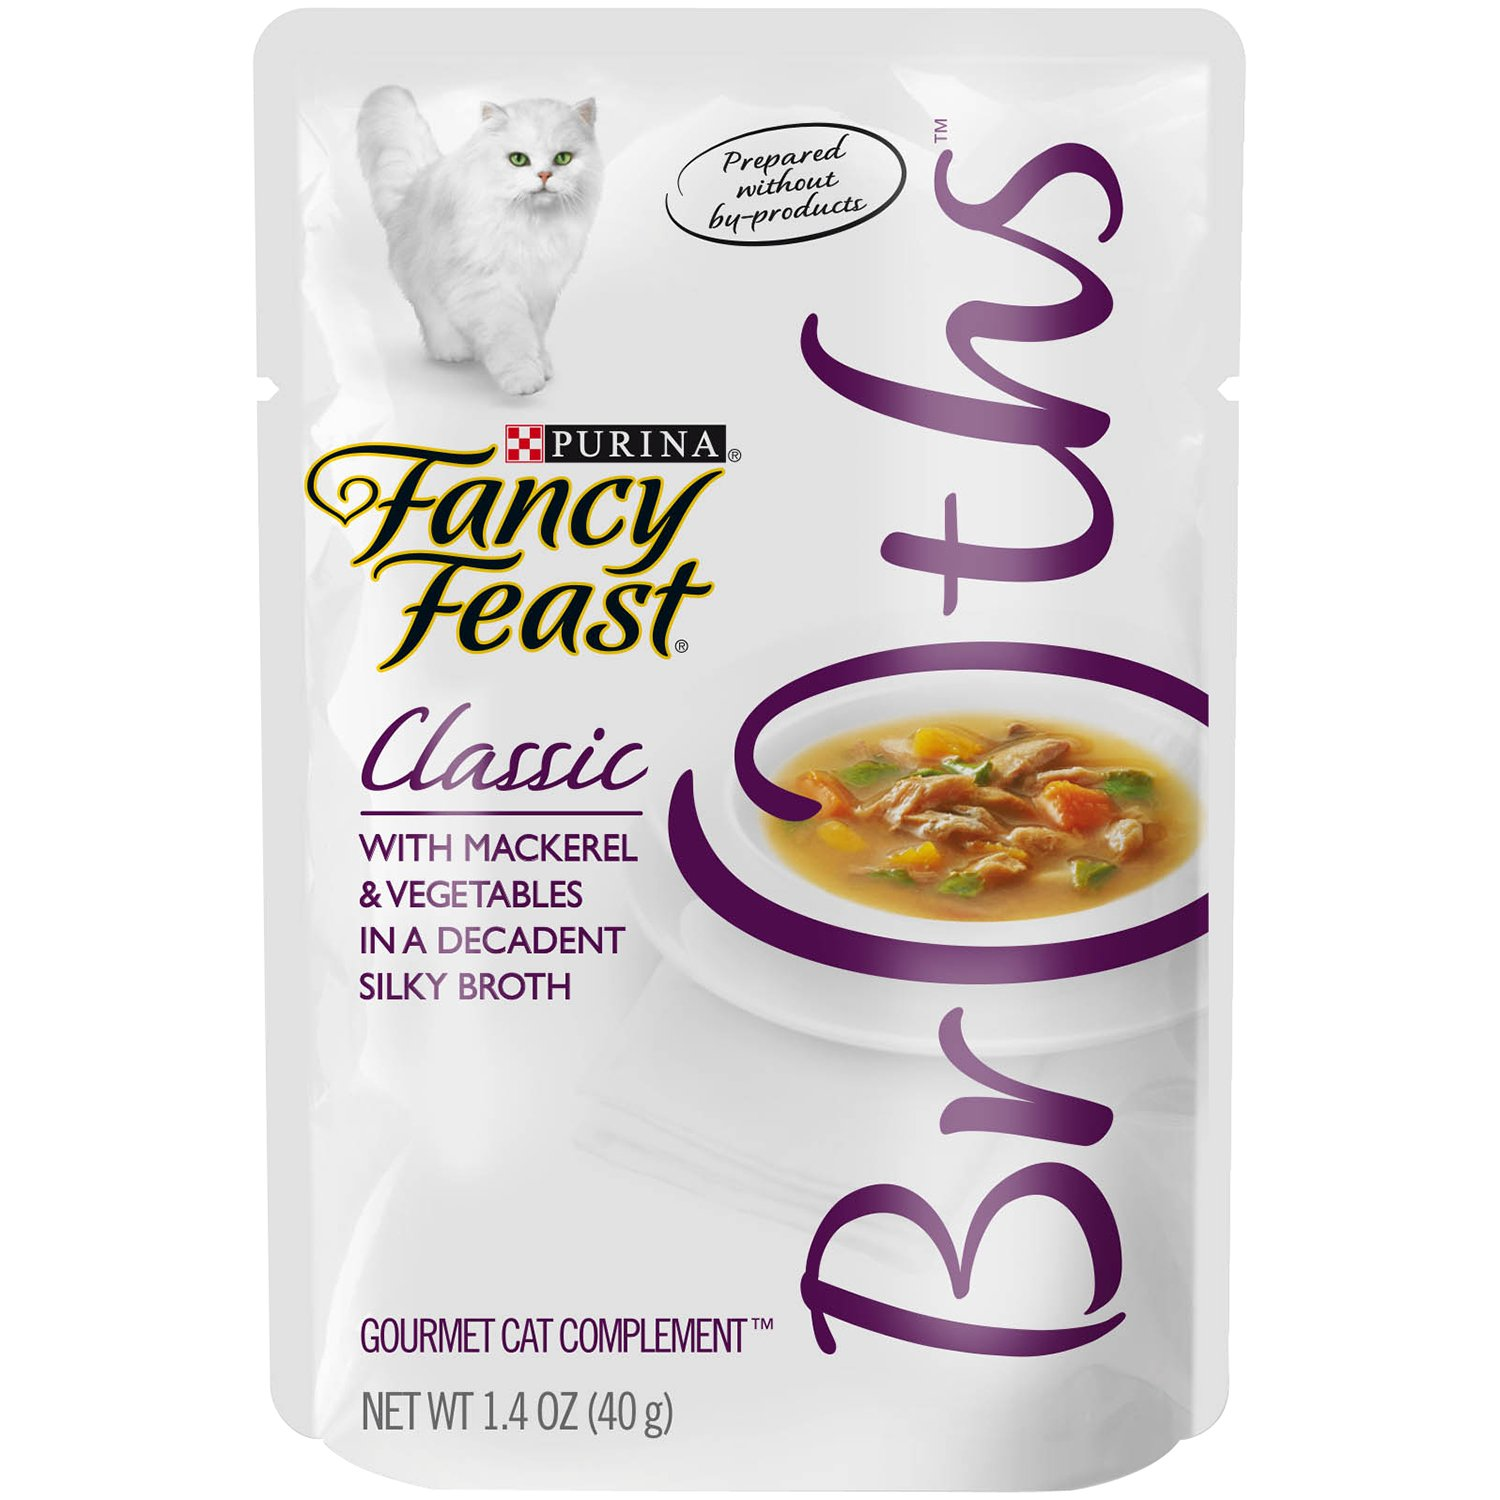 Purina Fancy Feast Classic With Mackerel & Vegetables Cat Food - (32) 1.4 Oz. Pouch by Purina Fancy Feast